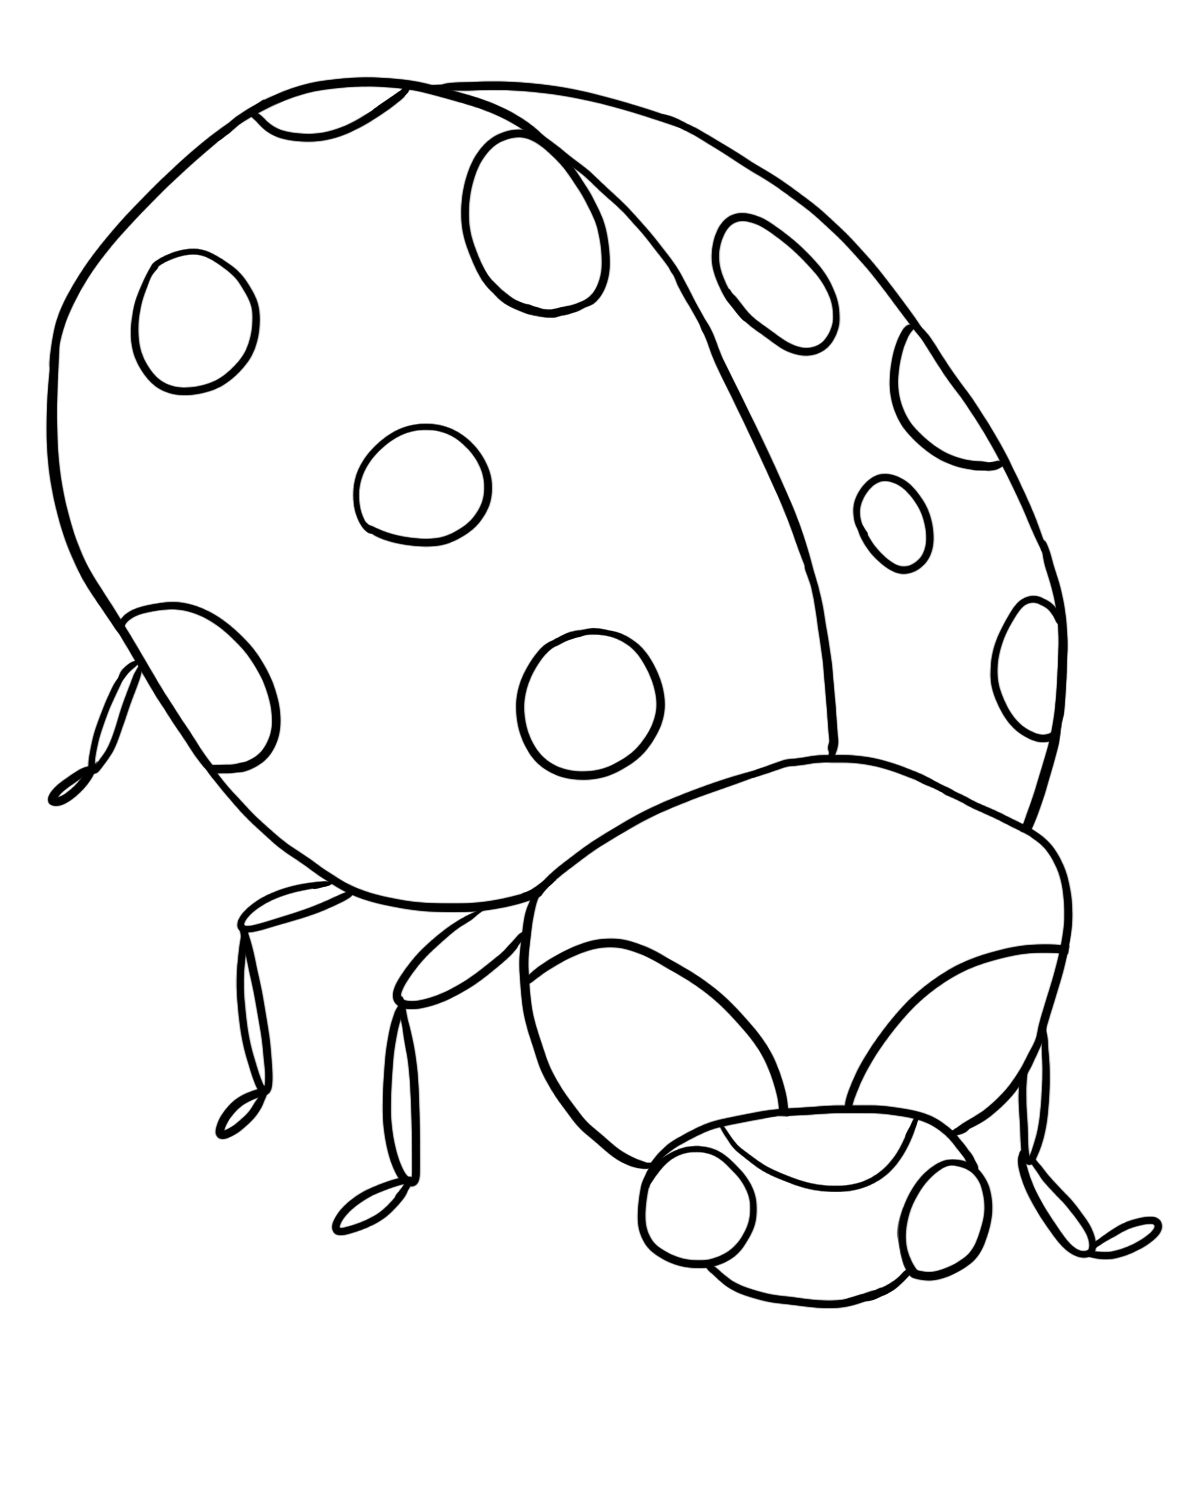 lady bug coloring pages FREE Ladybug Coloring Page lb4 lady bug coloring pages